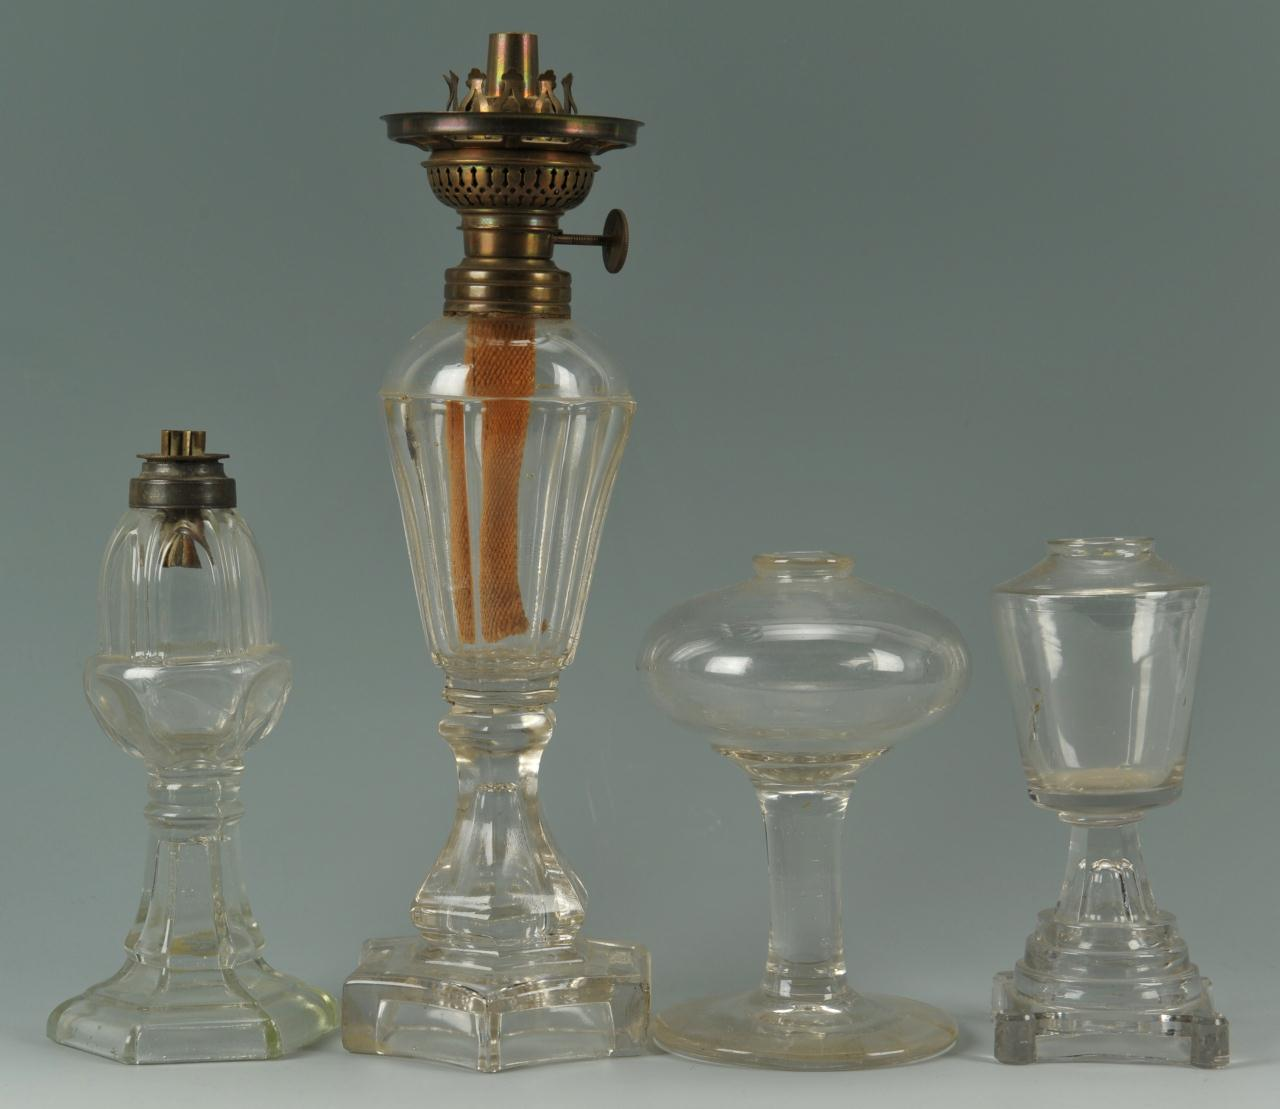 10 Facts About Whale Oil Lamps Warisan Lighting